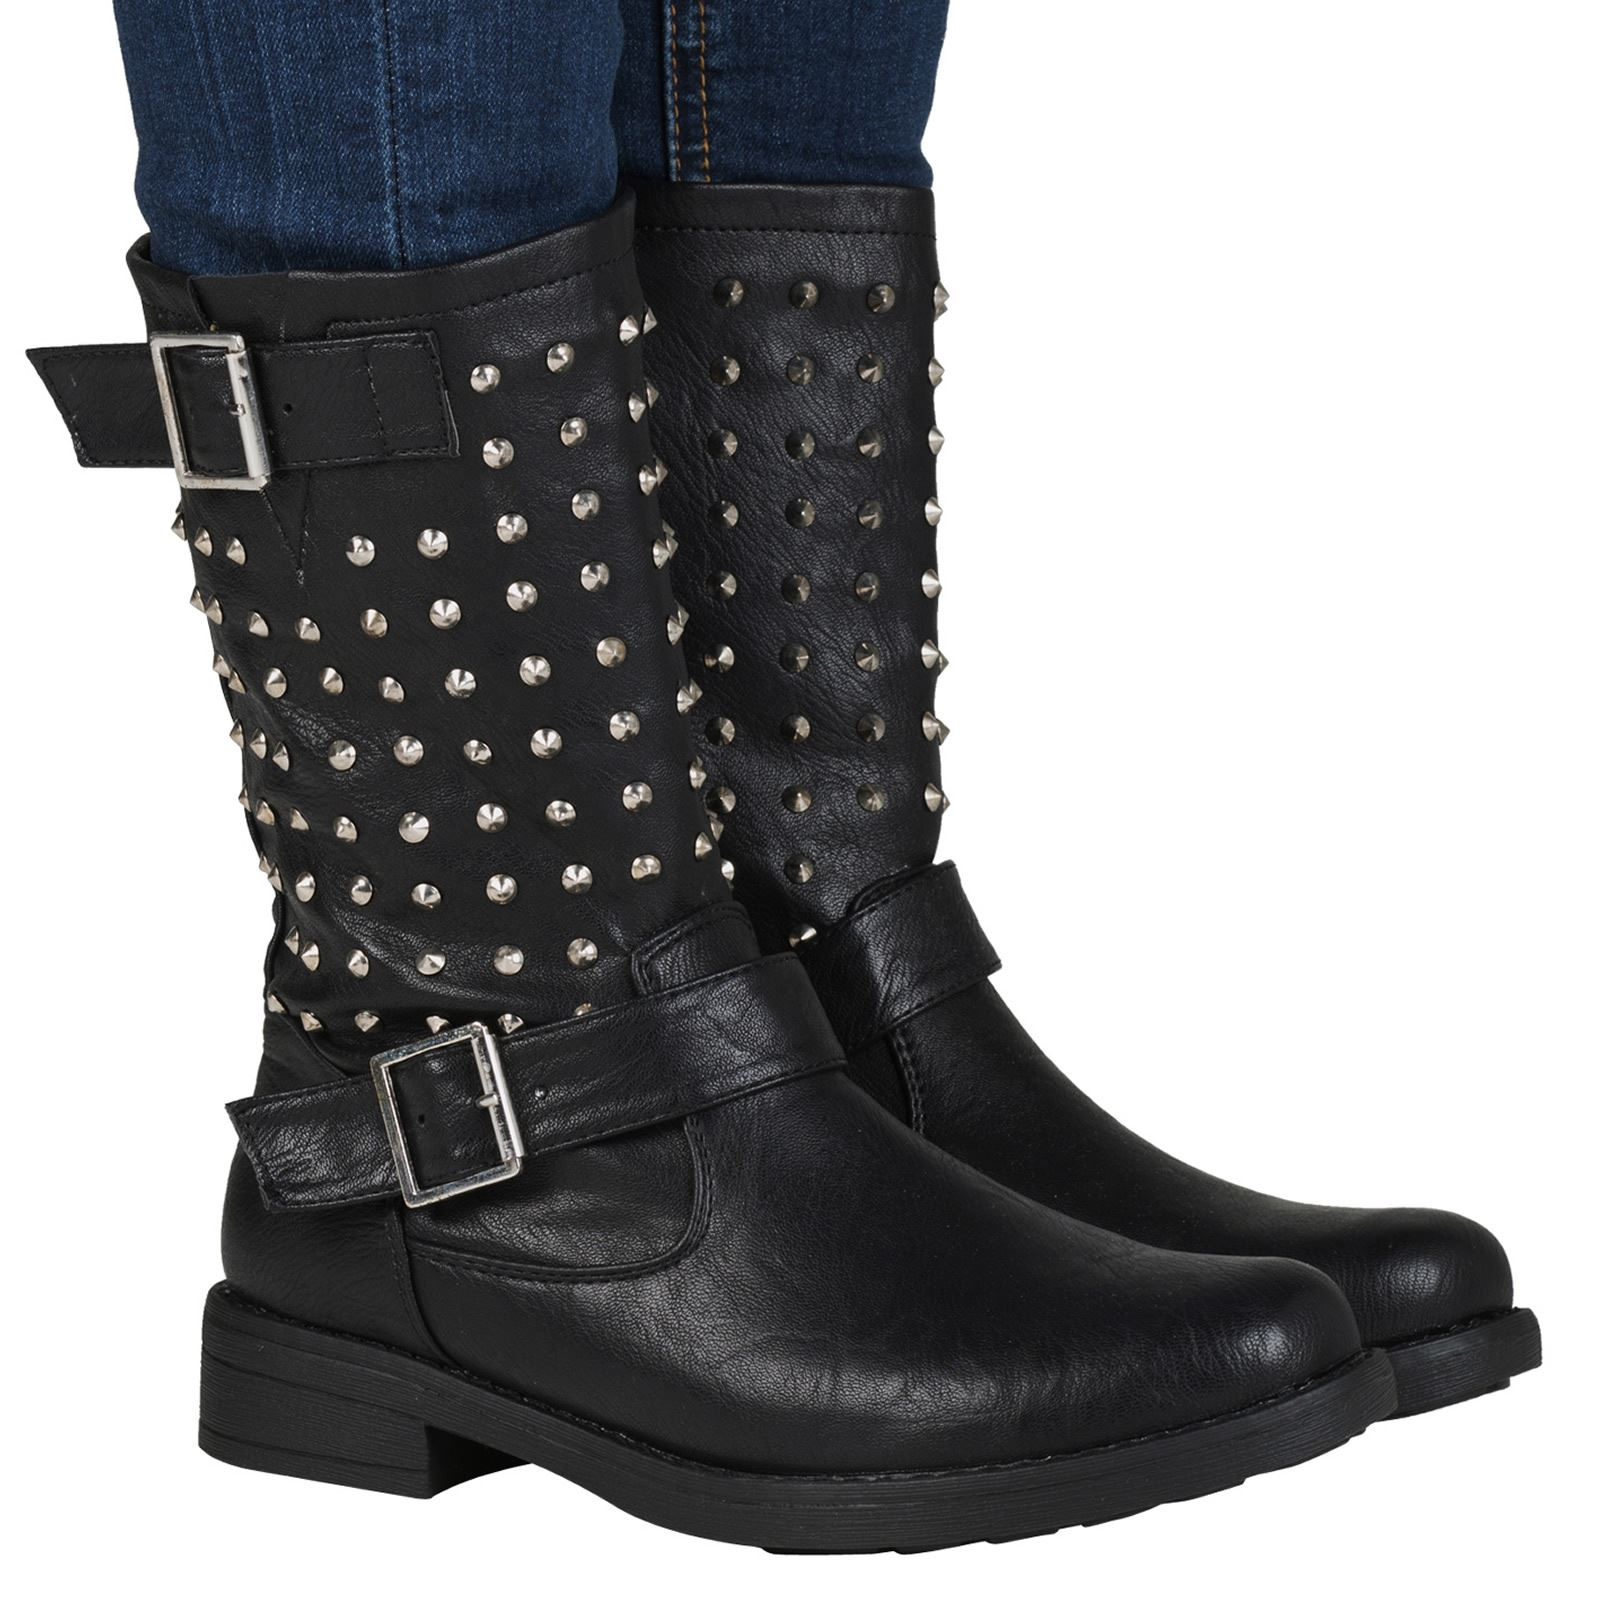 Lastest 95+ [ Motorcycle Boots Outfit ] - Embellished Biker Boots And Distressed Denim How To Wear Your ...